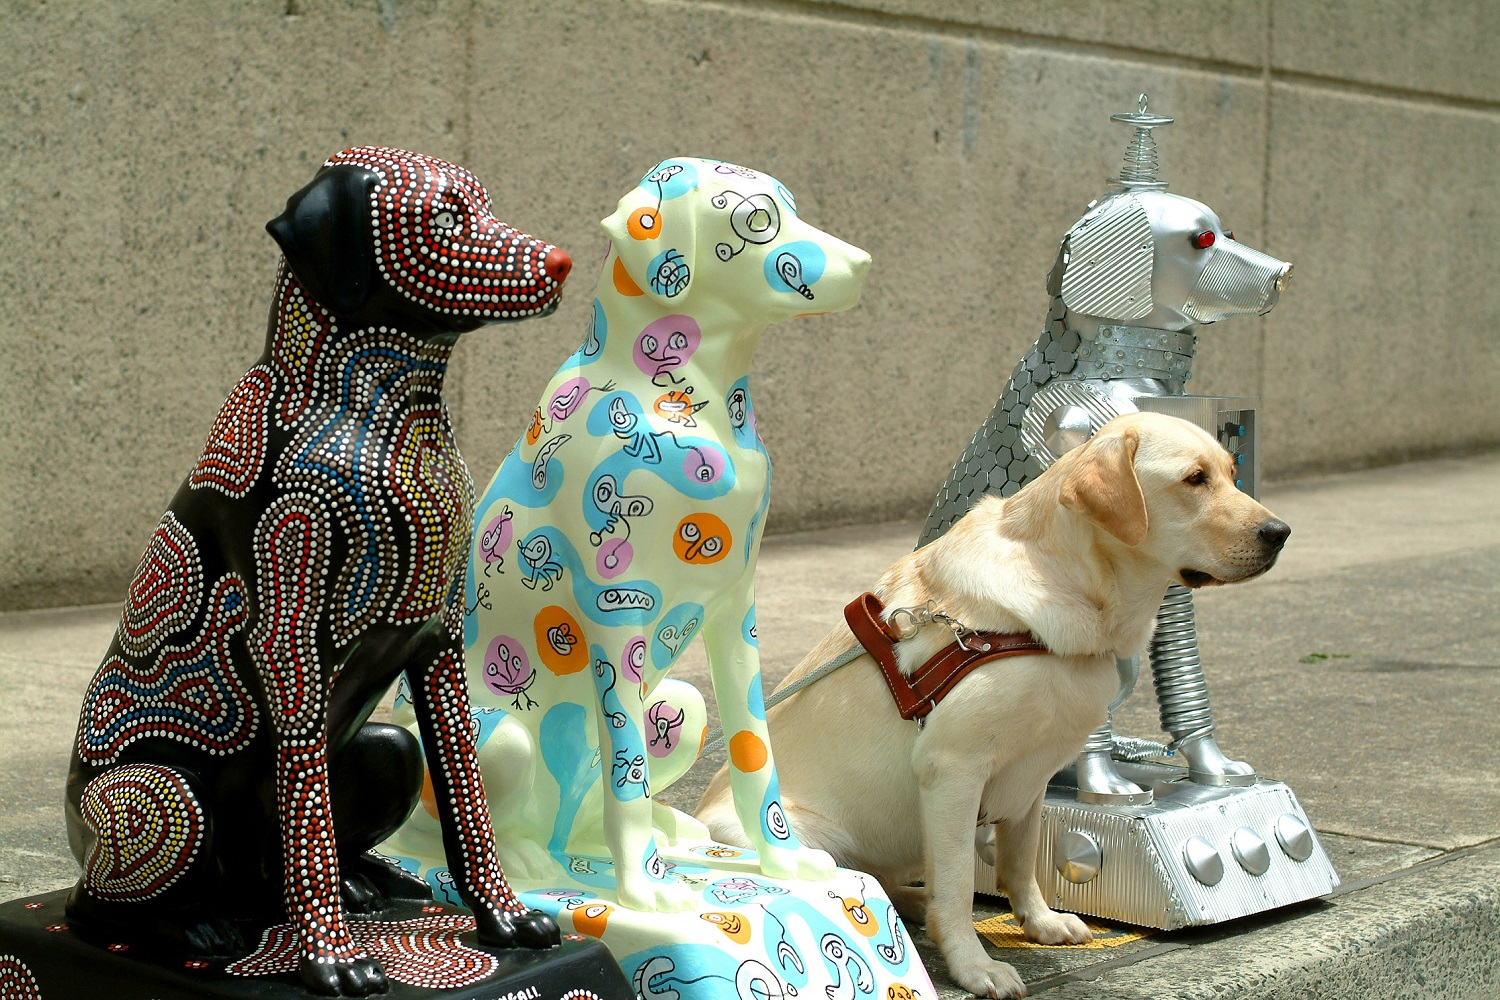 60 Tails – 60 Years of Guide Dogs exhibition